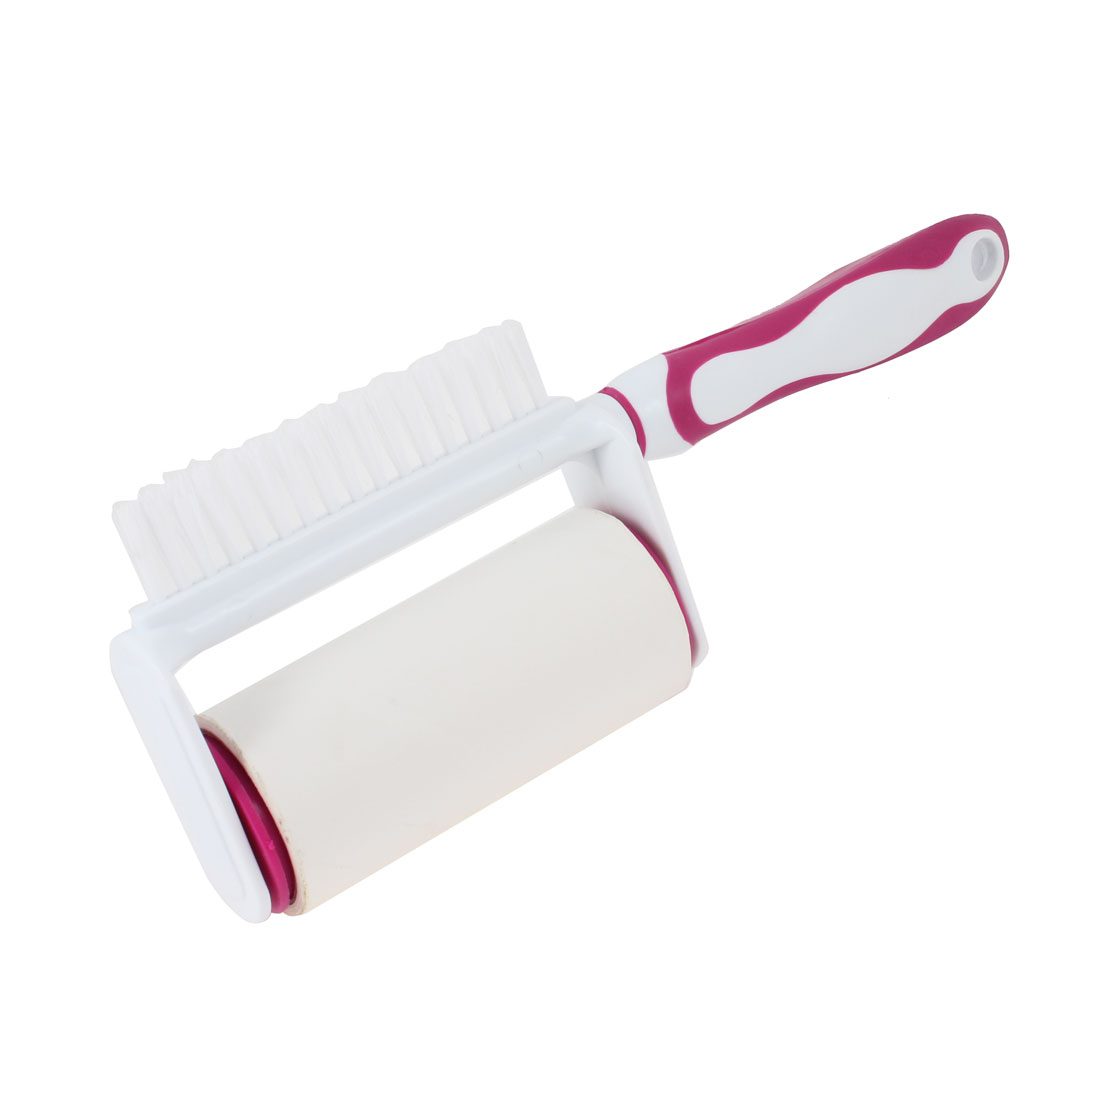 Plastic Handle Reusable Sticky Remover Brush Picker Clothes Cleaner Lint Roller